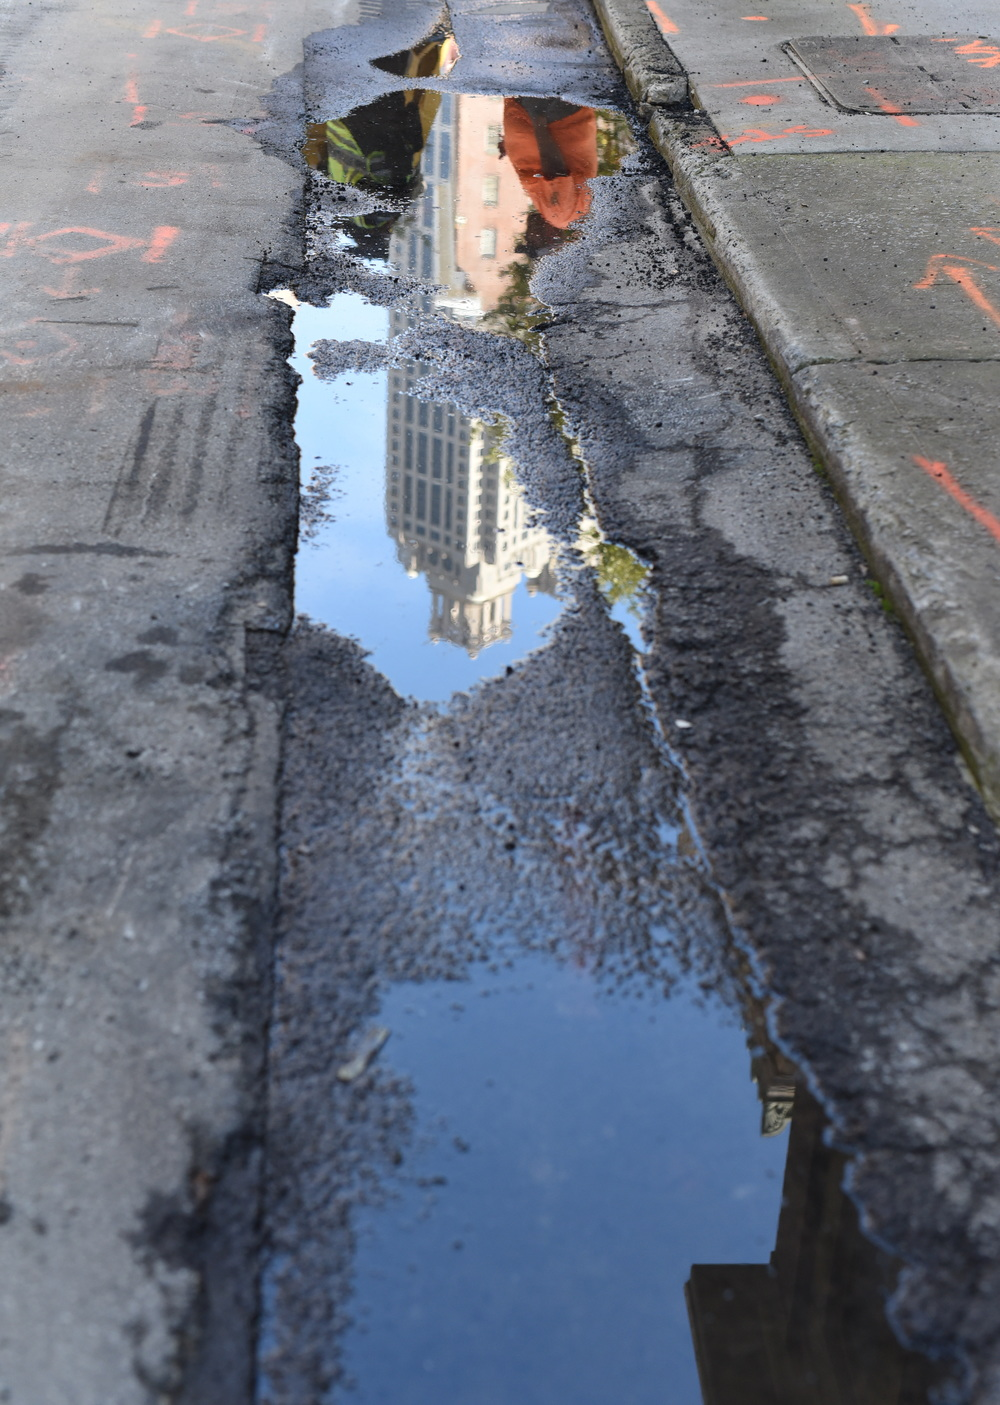 reflection-in-puddle-jpg